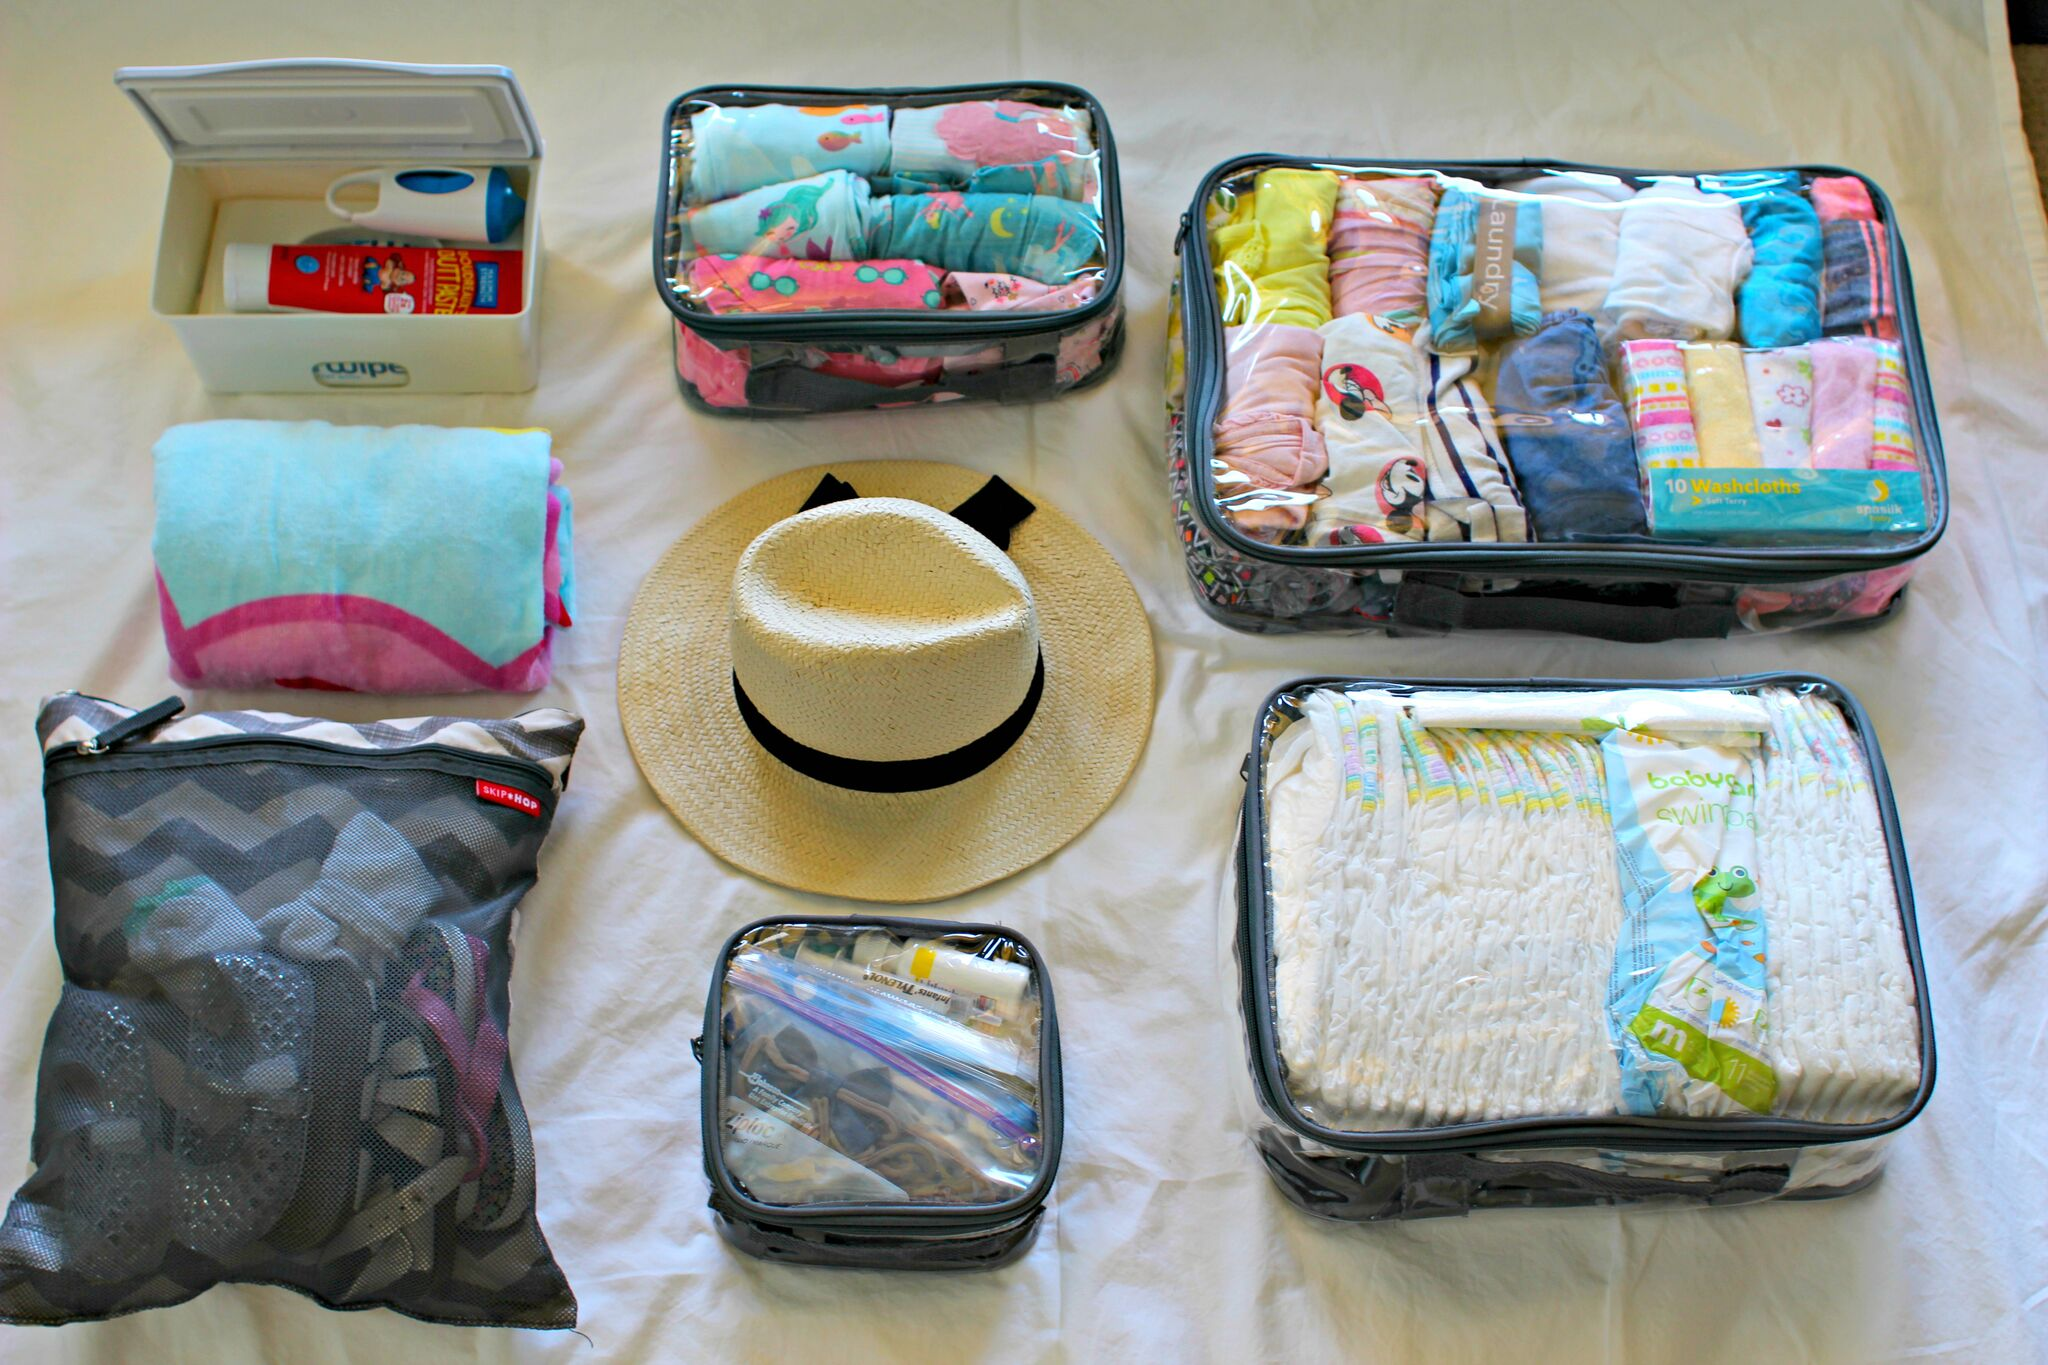 Kid's travel items organized using packing cubes